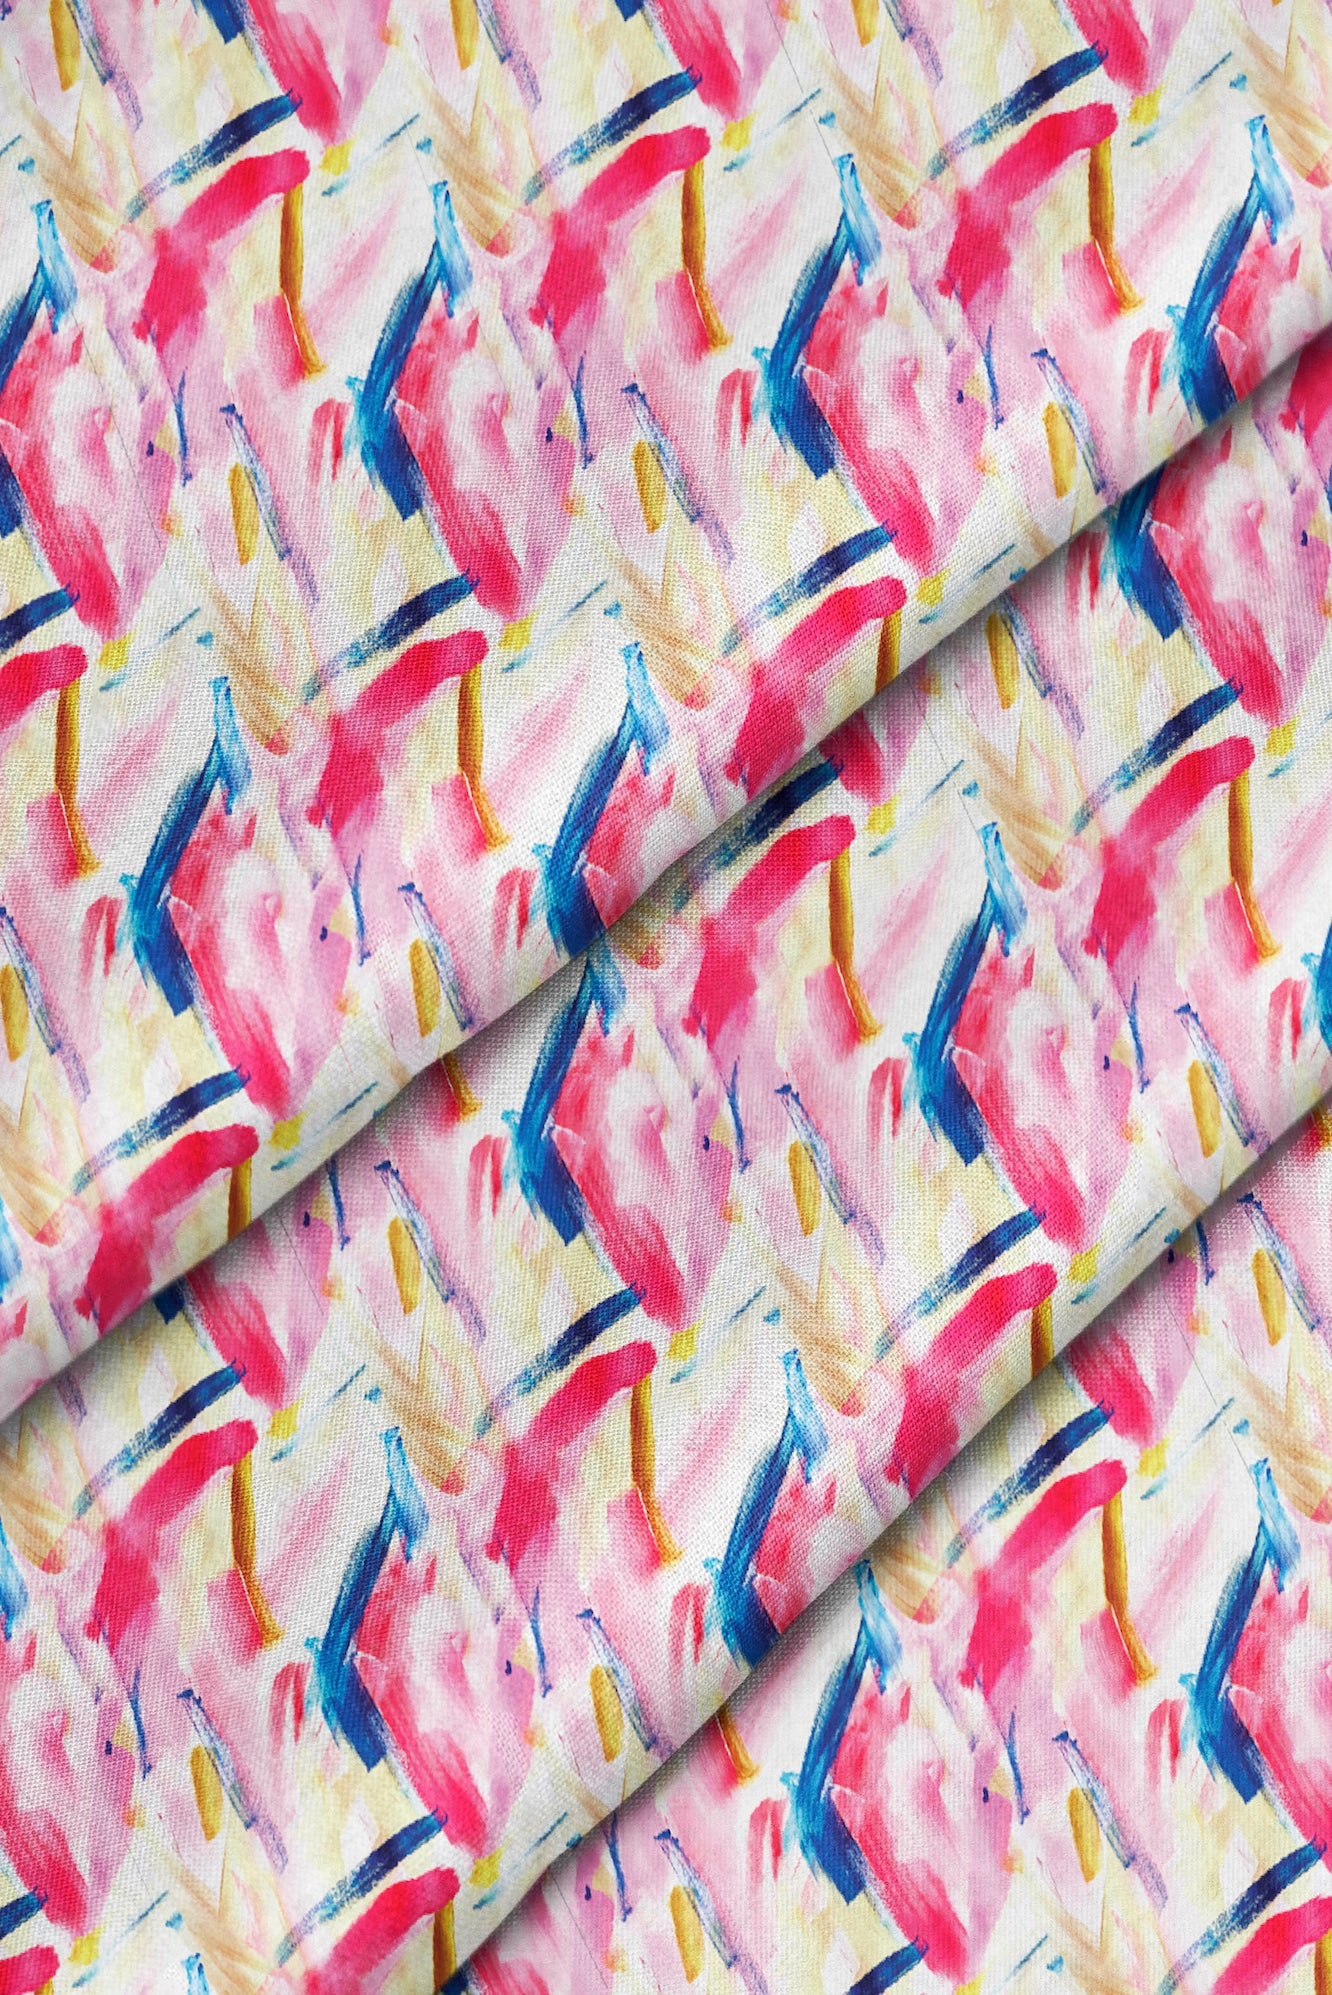 Cotton Candy Fabric - Pink